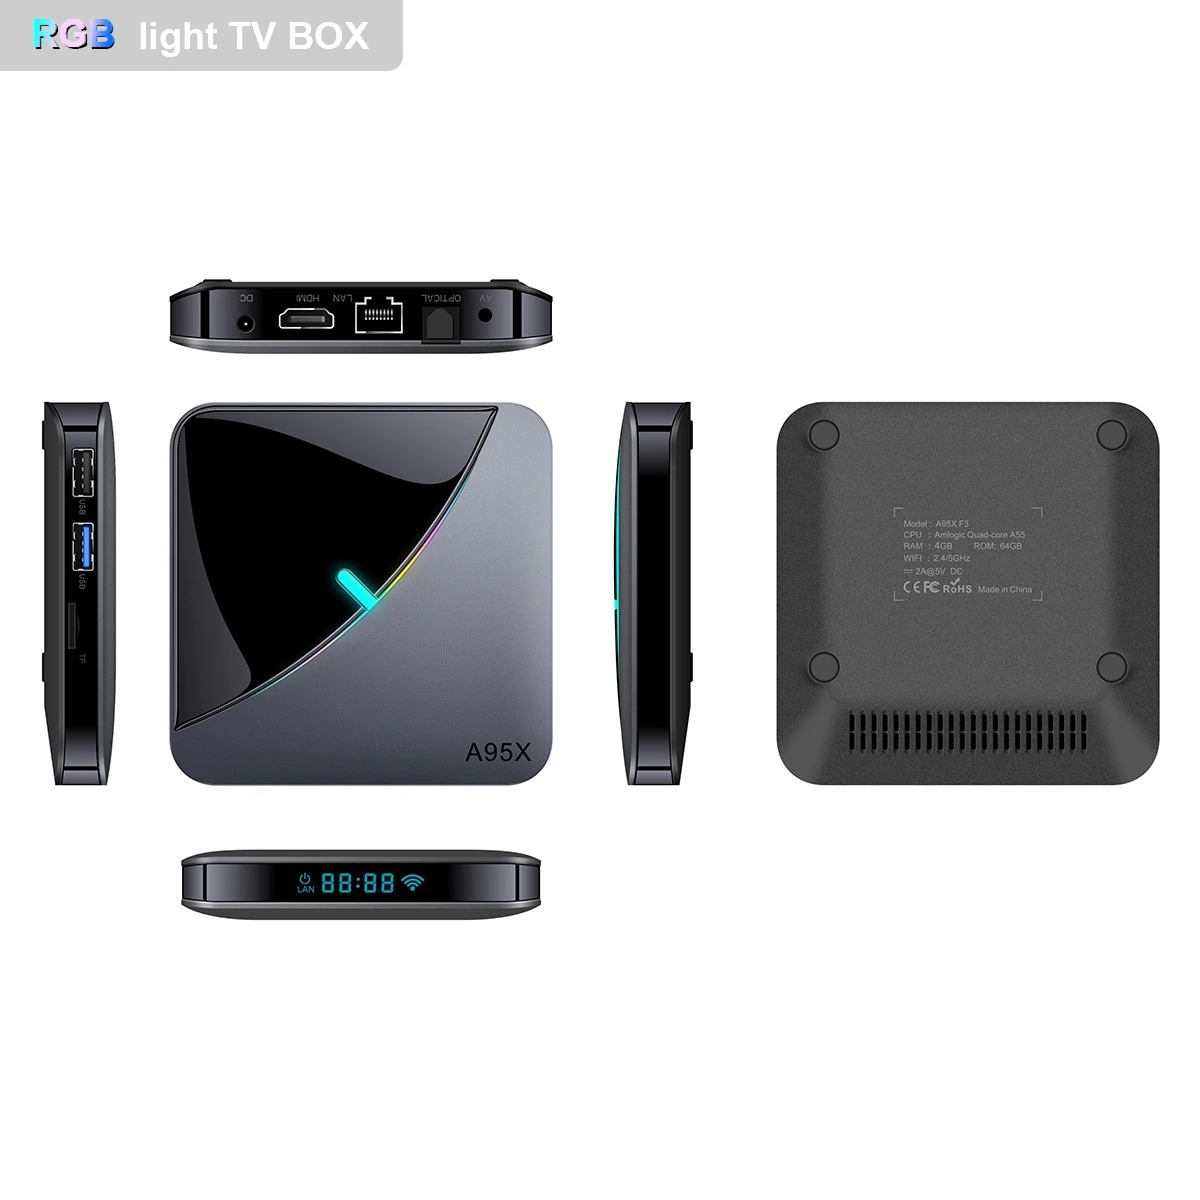 A95X F3 Android Smart TV Box - 4GB 64GB Android 9 Amlogic S905X3 Dual WiFi Bluetooth 100Mbps LAN